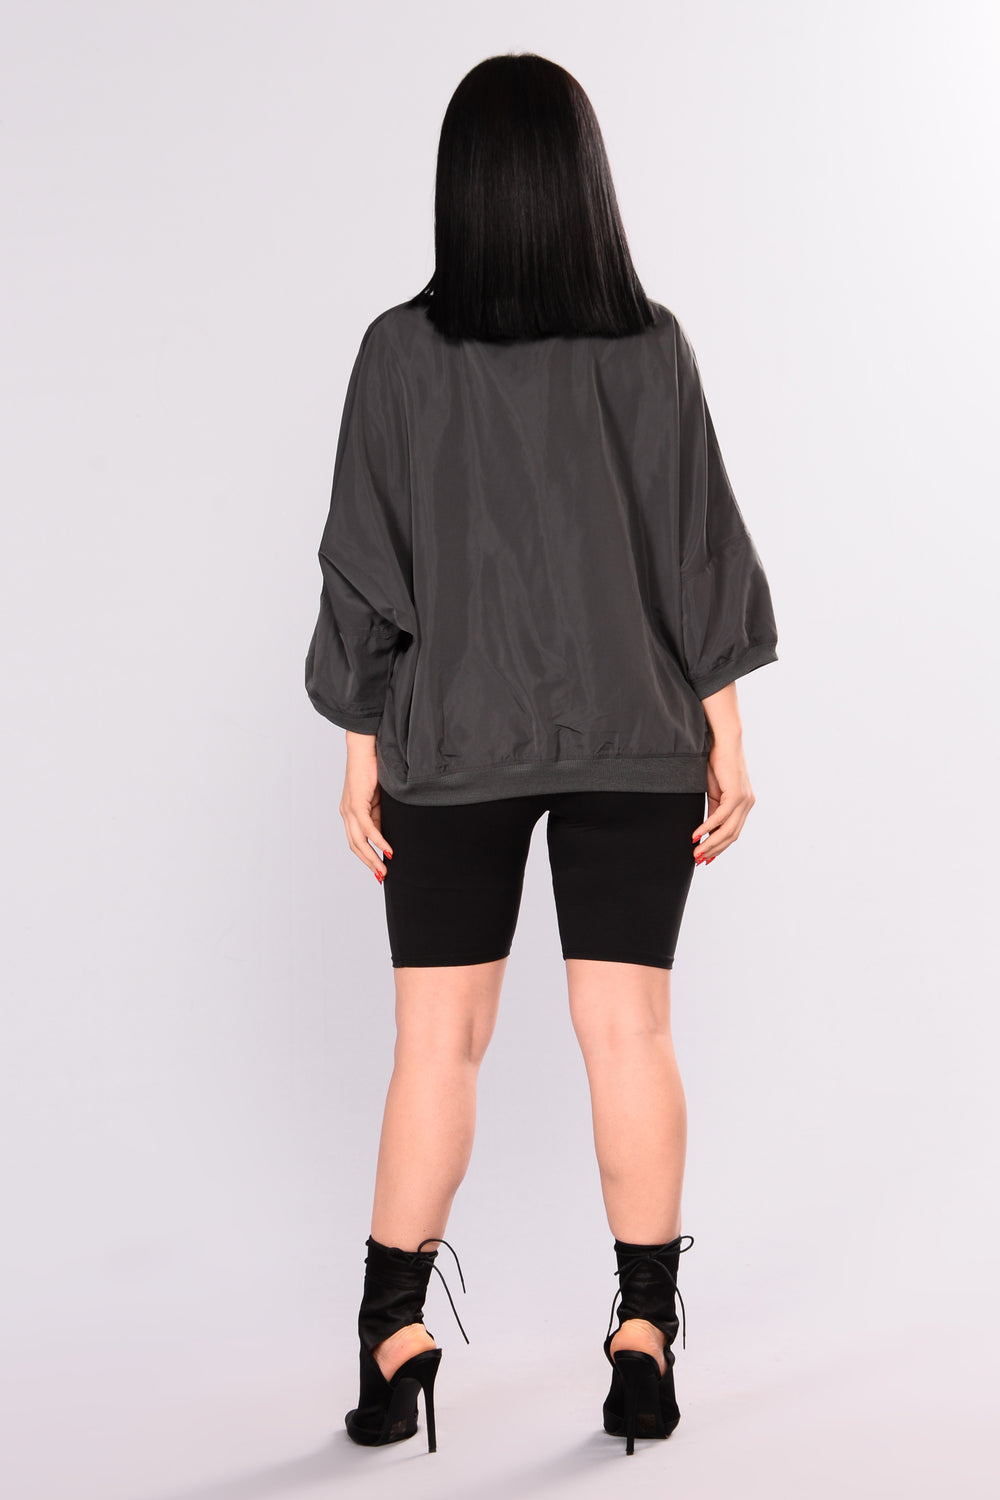 Baddie 1 Top - Charcoal